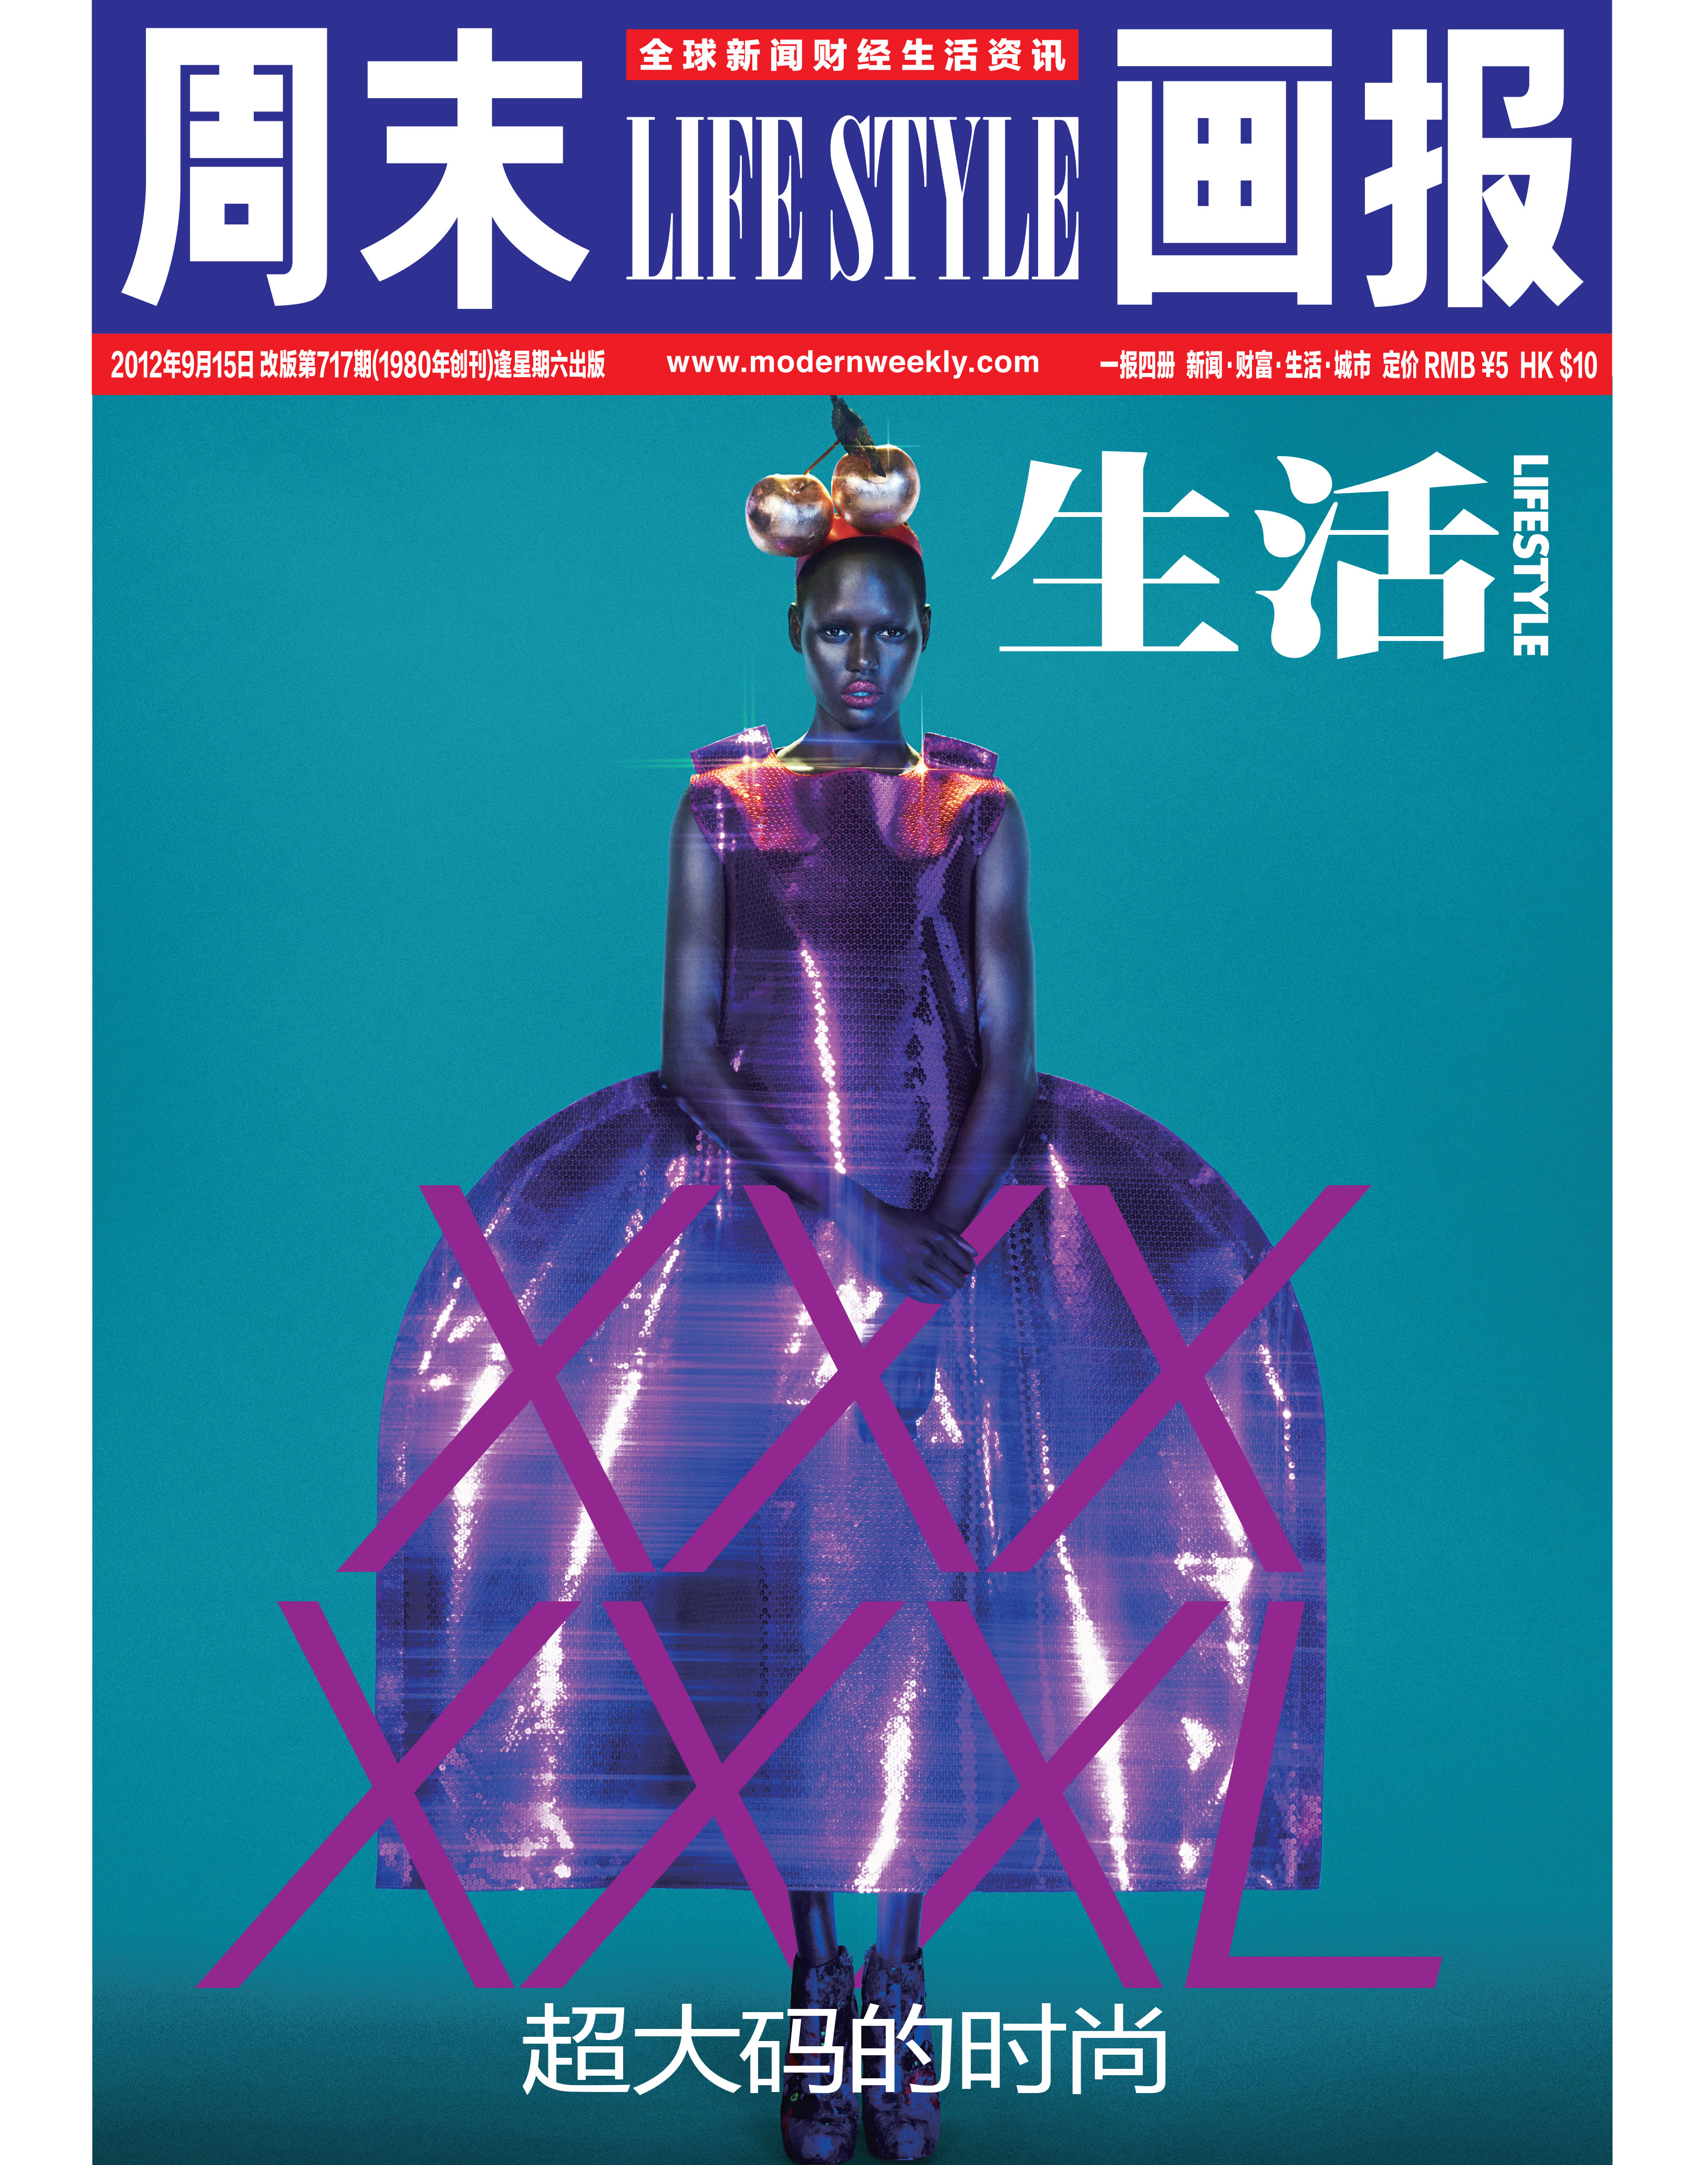 Ajak Deng on the cover on Modern Weekly in 2011. She is the first Black model to be on the cover of a Chinese fashion publication.